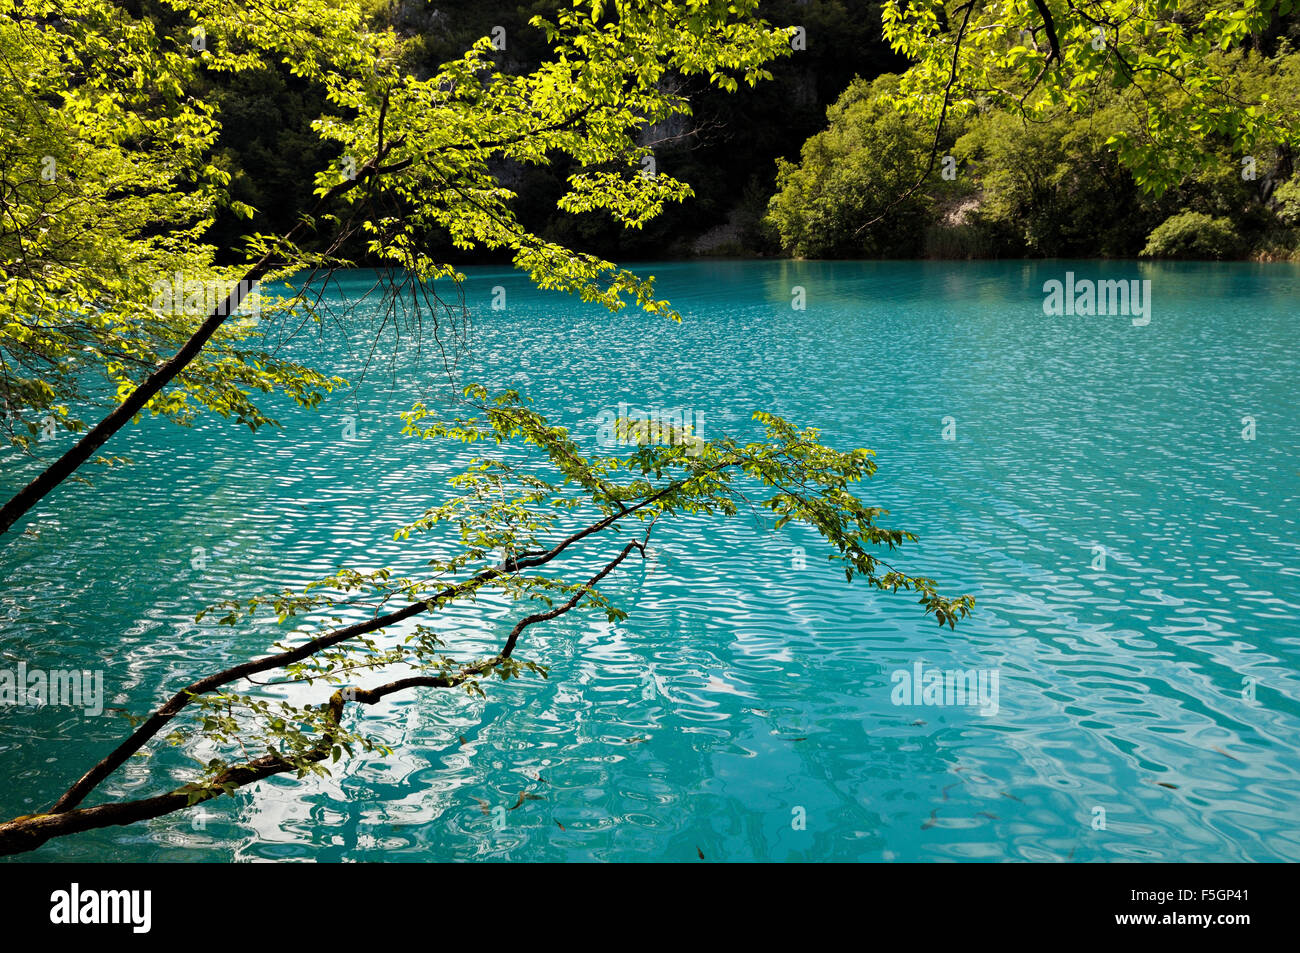 Green leaves above turquoise water in Plitvice Lakes National Park, Lower lakes group, Croatia - Stock Image